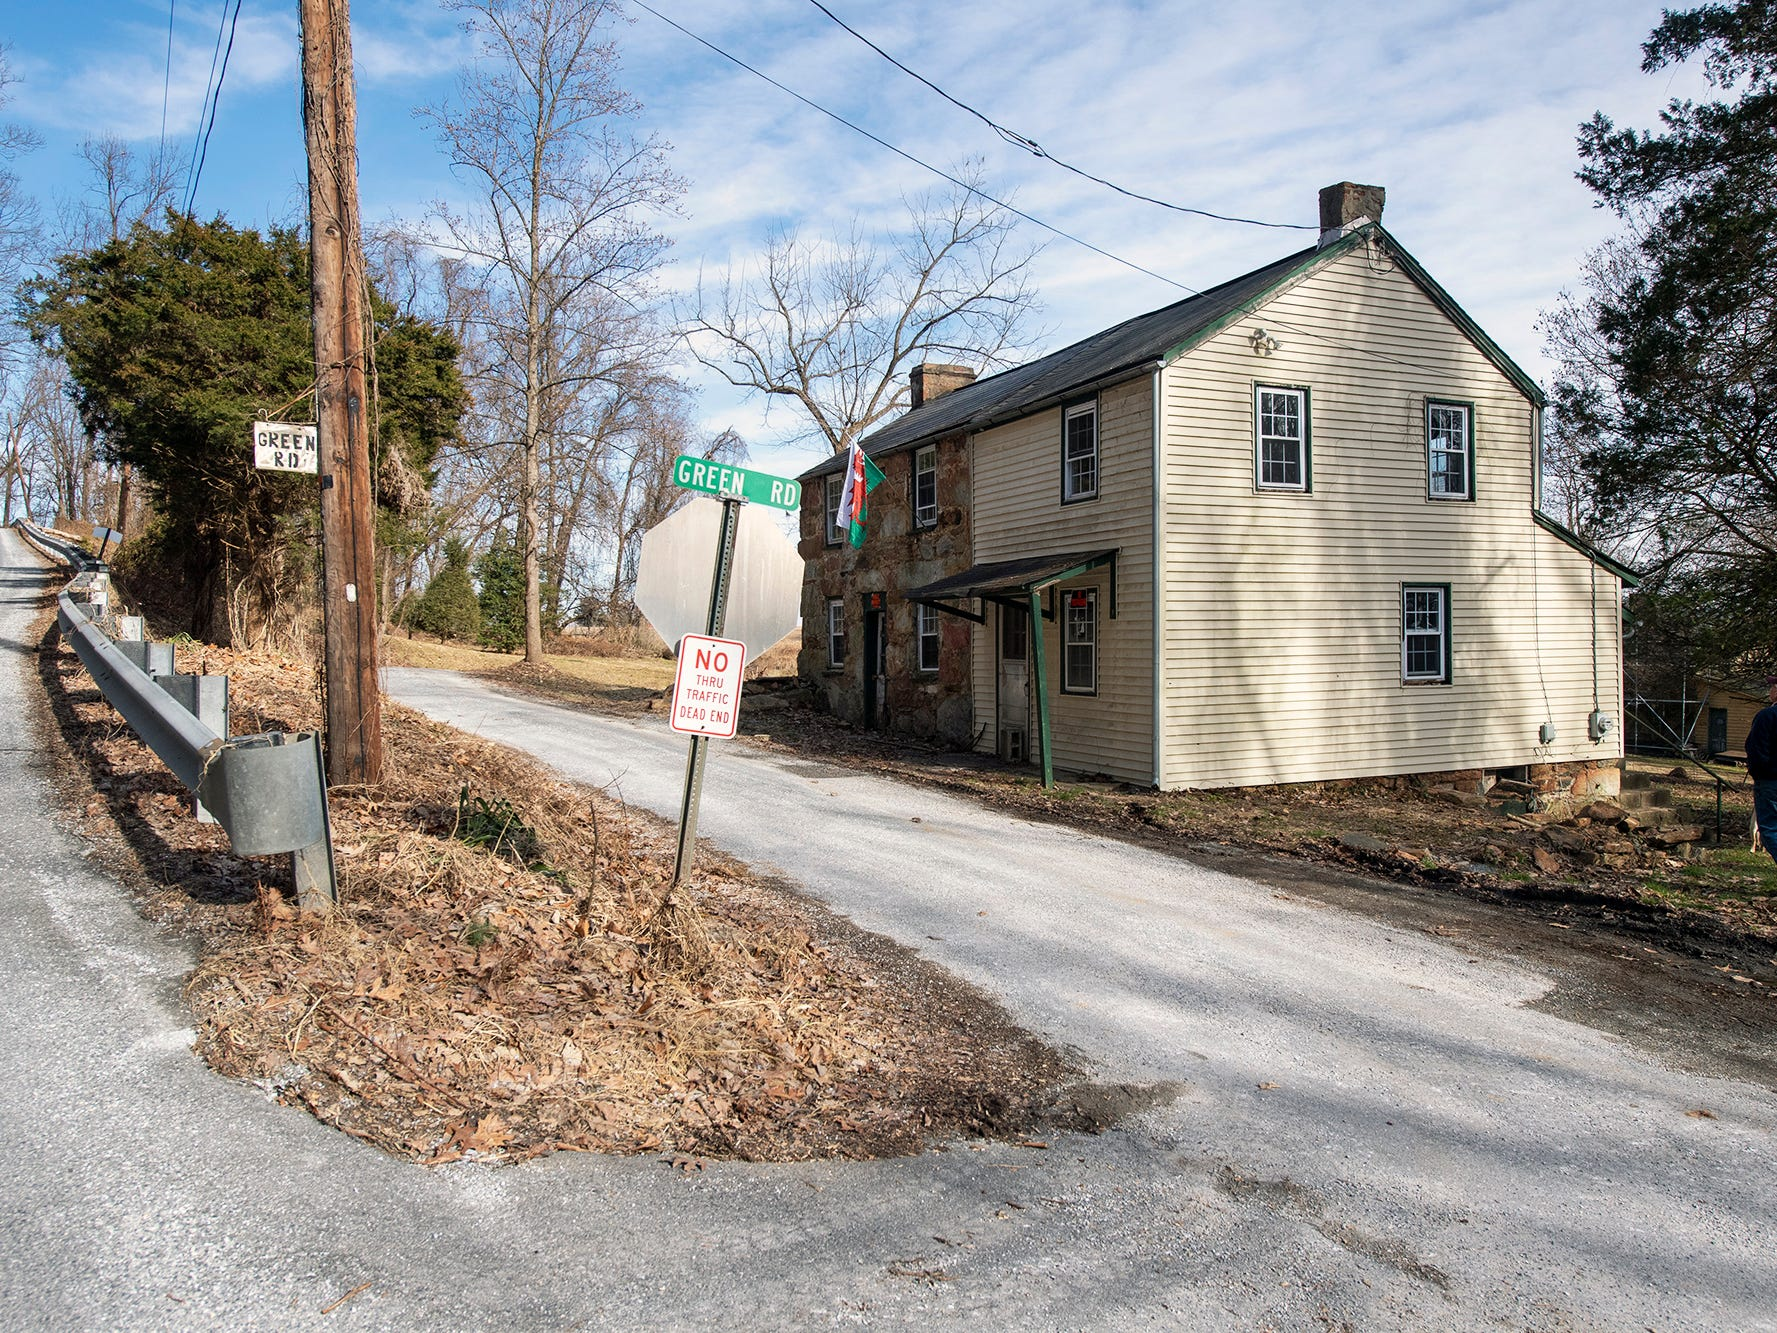 Green Road winds off Ridge Road into Coulsontown in Peach Bottom Township on February 19, 2019, passing the most recently purchased Welsh quarrymen's cottage.